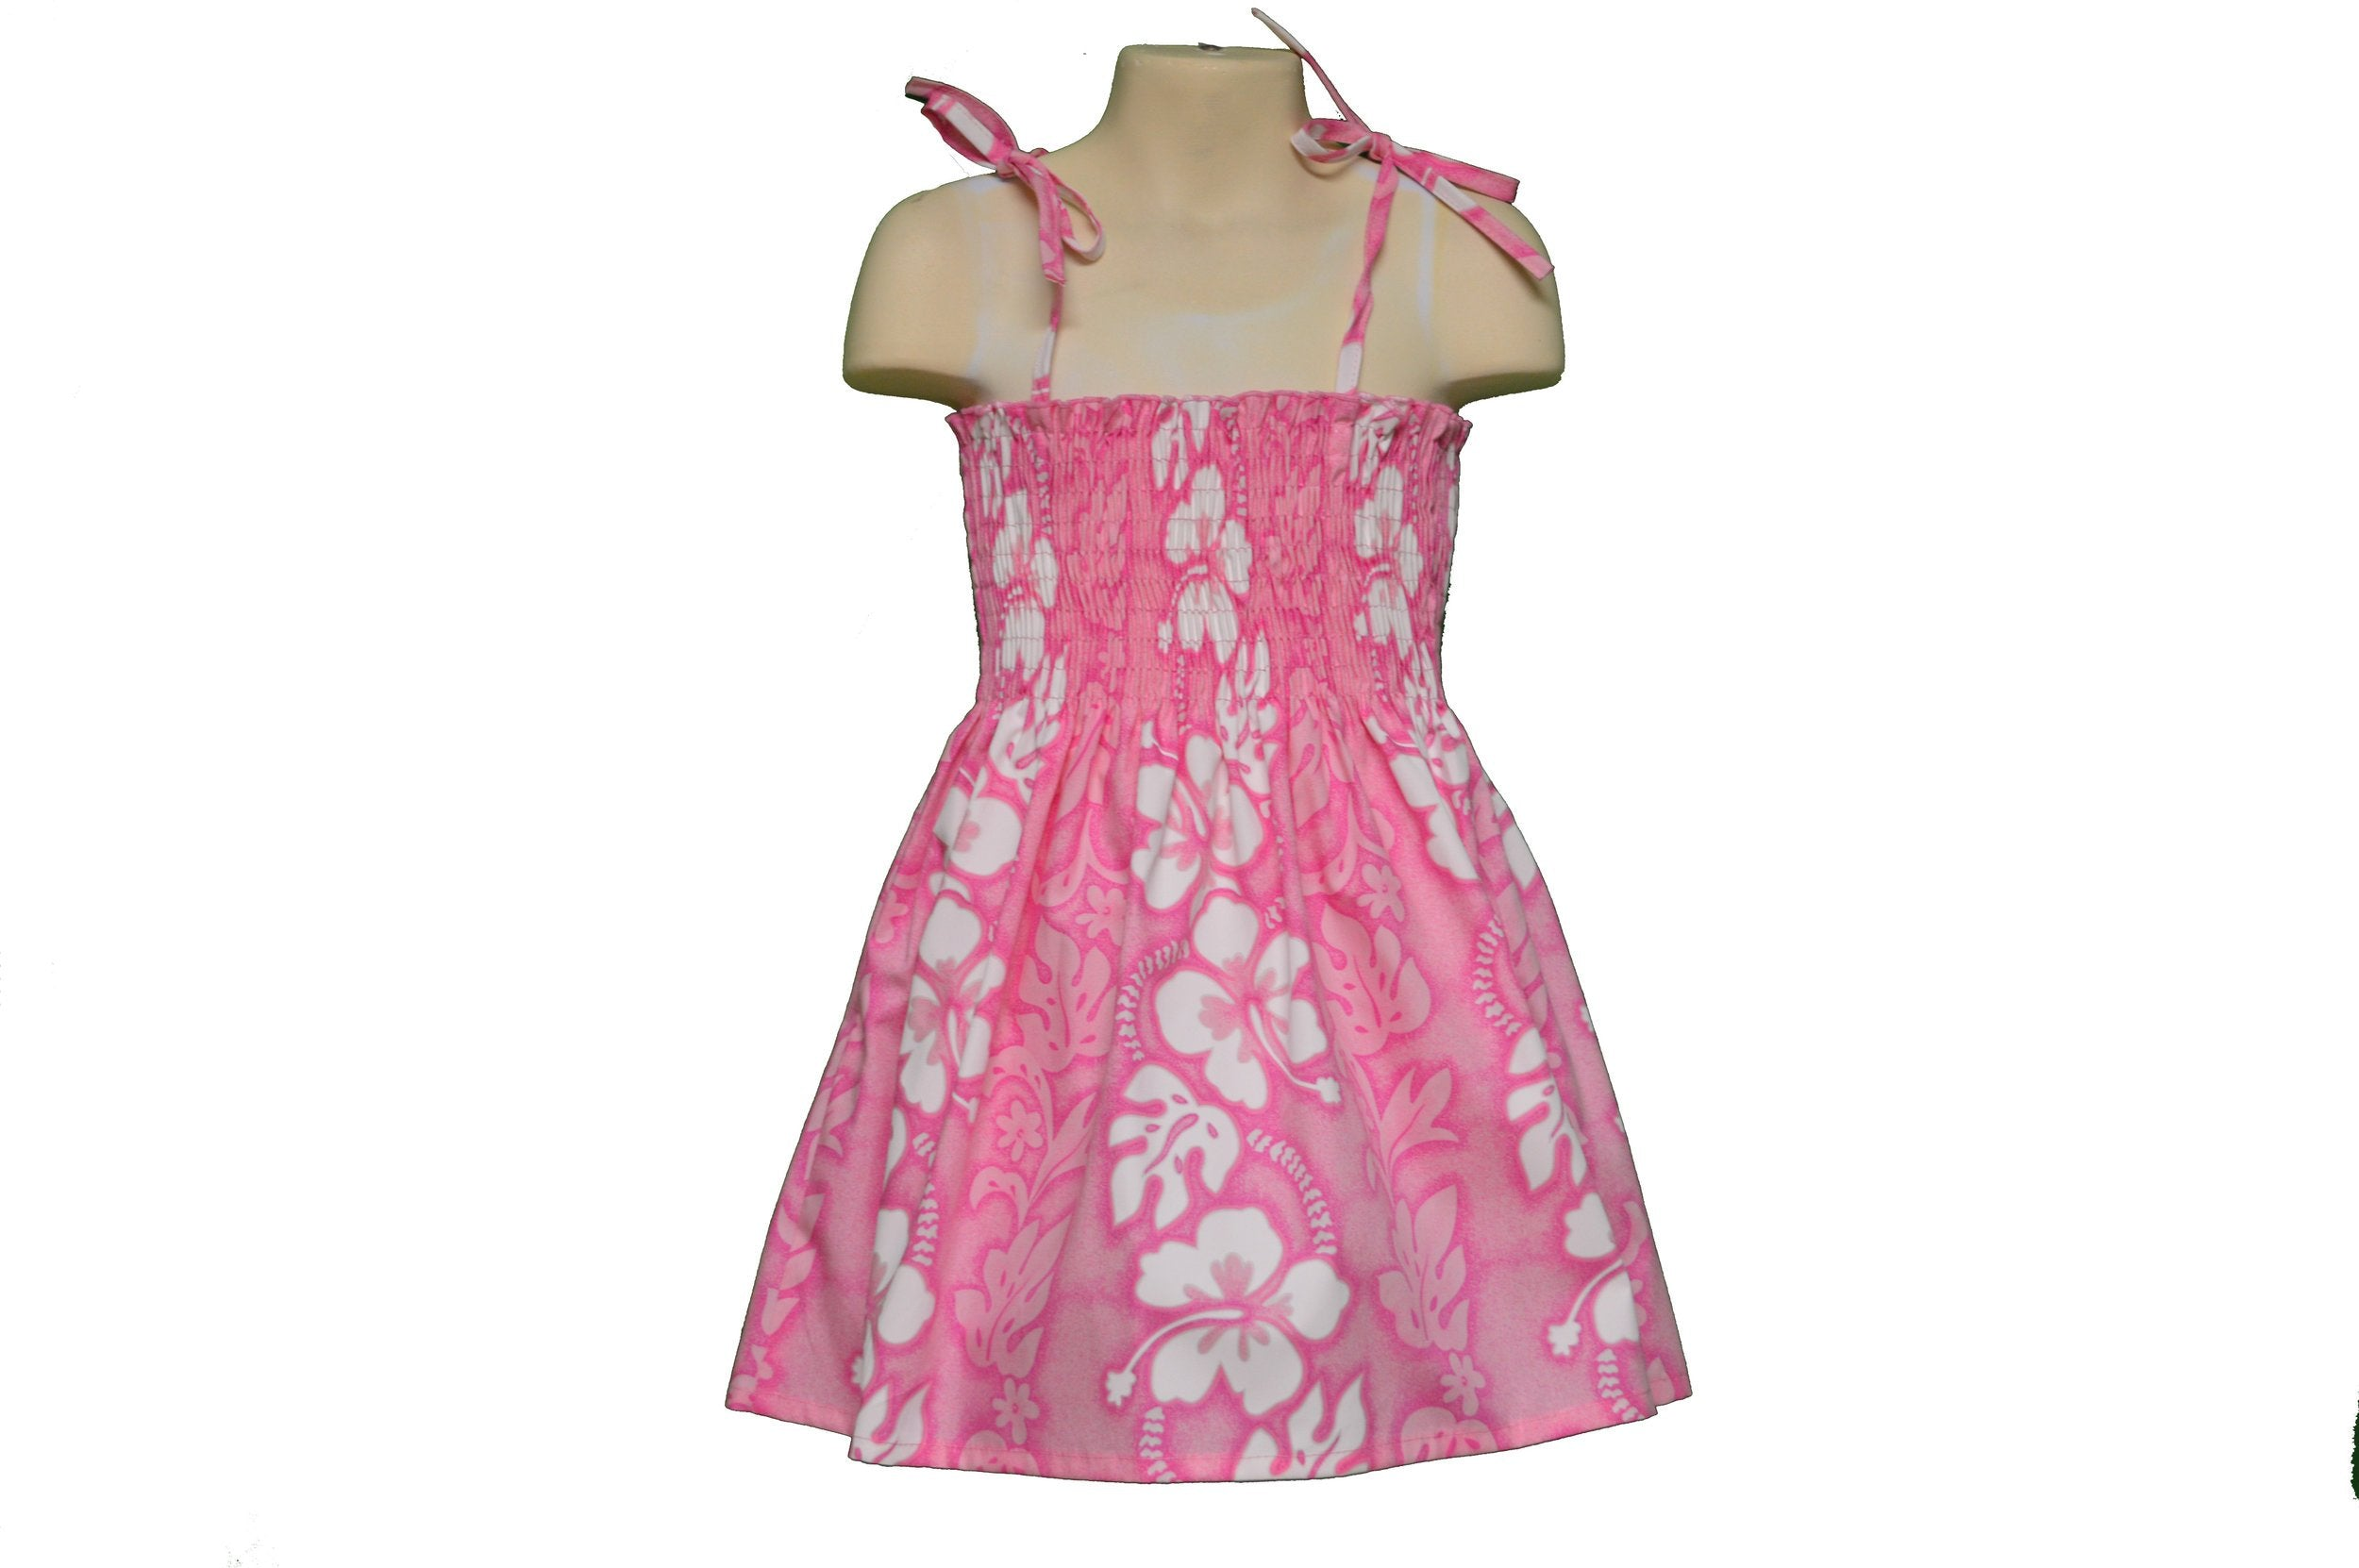 KY's Pink with White Hibiscus Girls Dress - Leilanis Attic